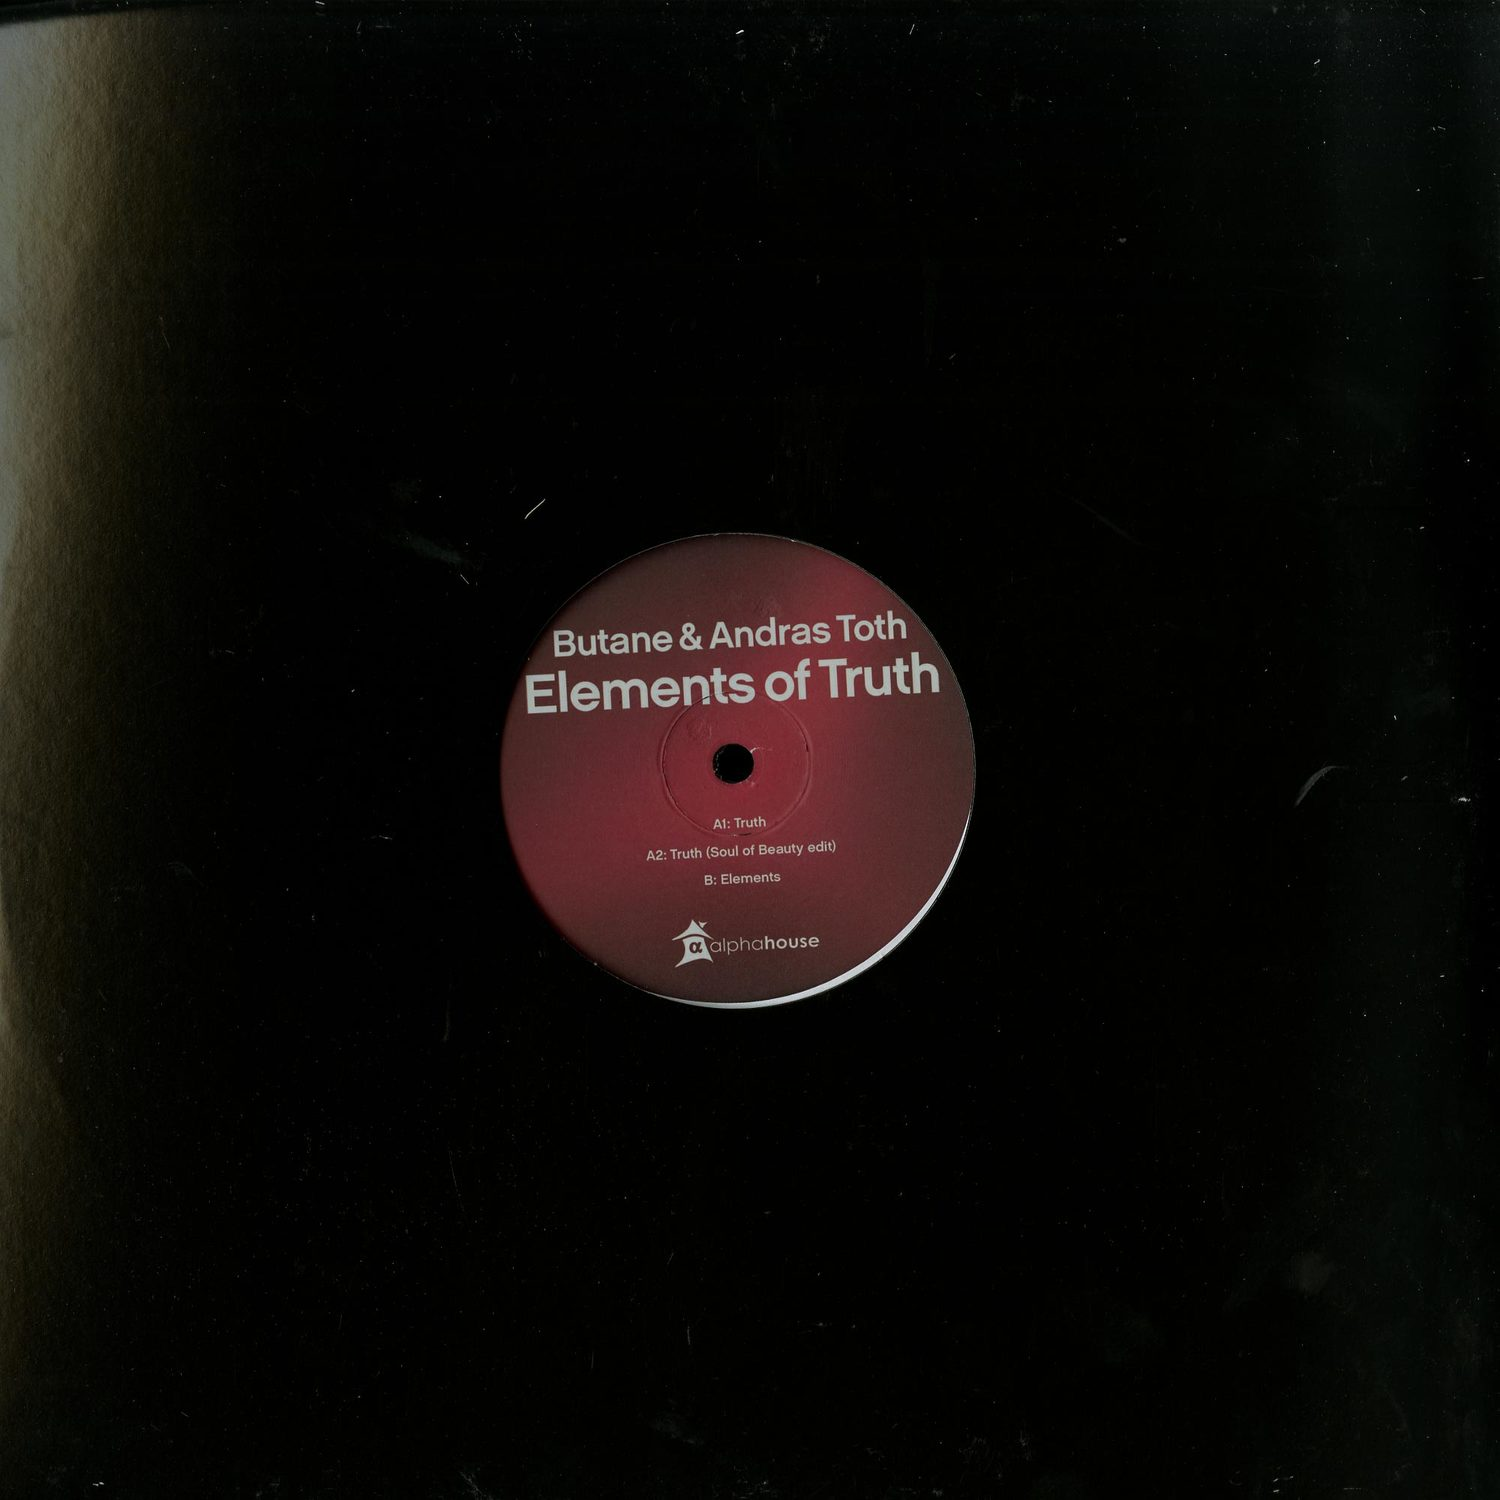 Butane & Andras Toth - ELEMENTS OF TRUTH EP